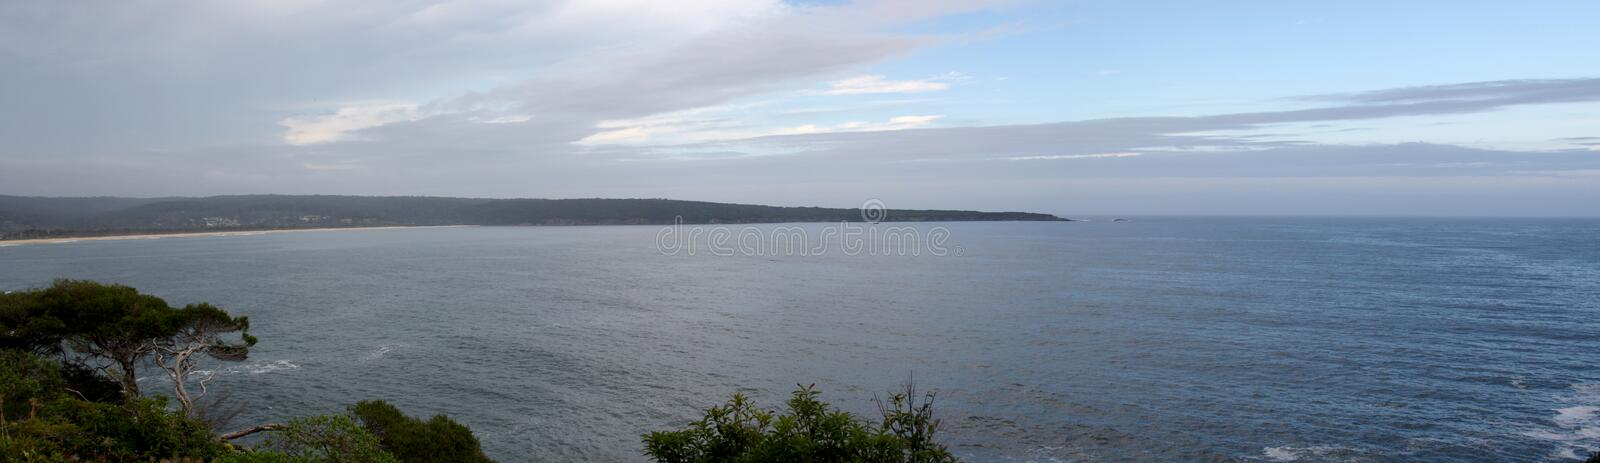 Panorama of Eden harbor entrance royalty free stock photo